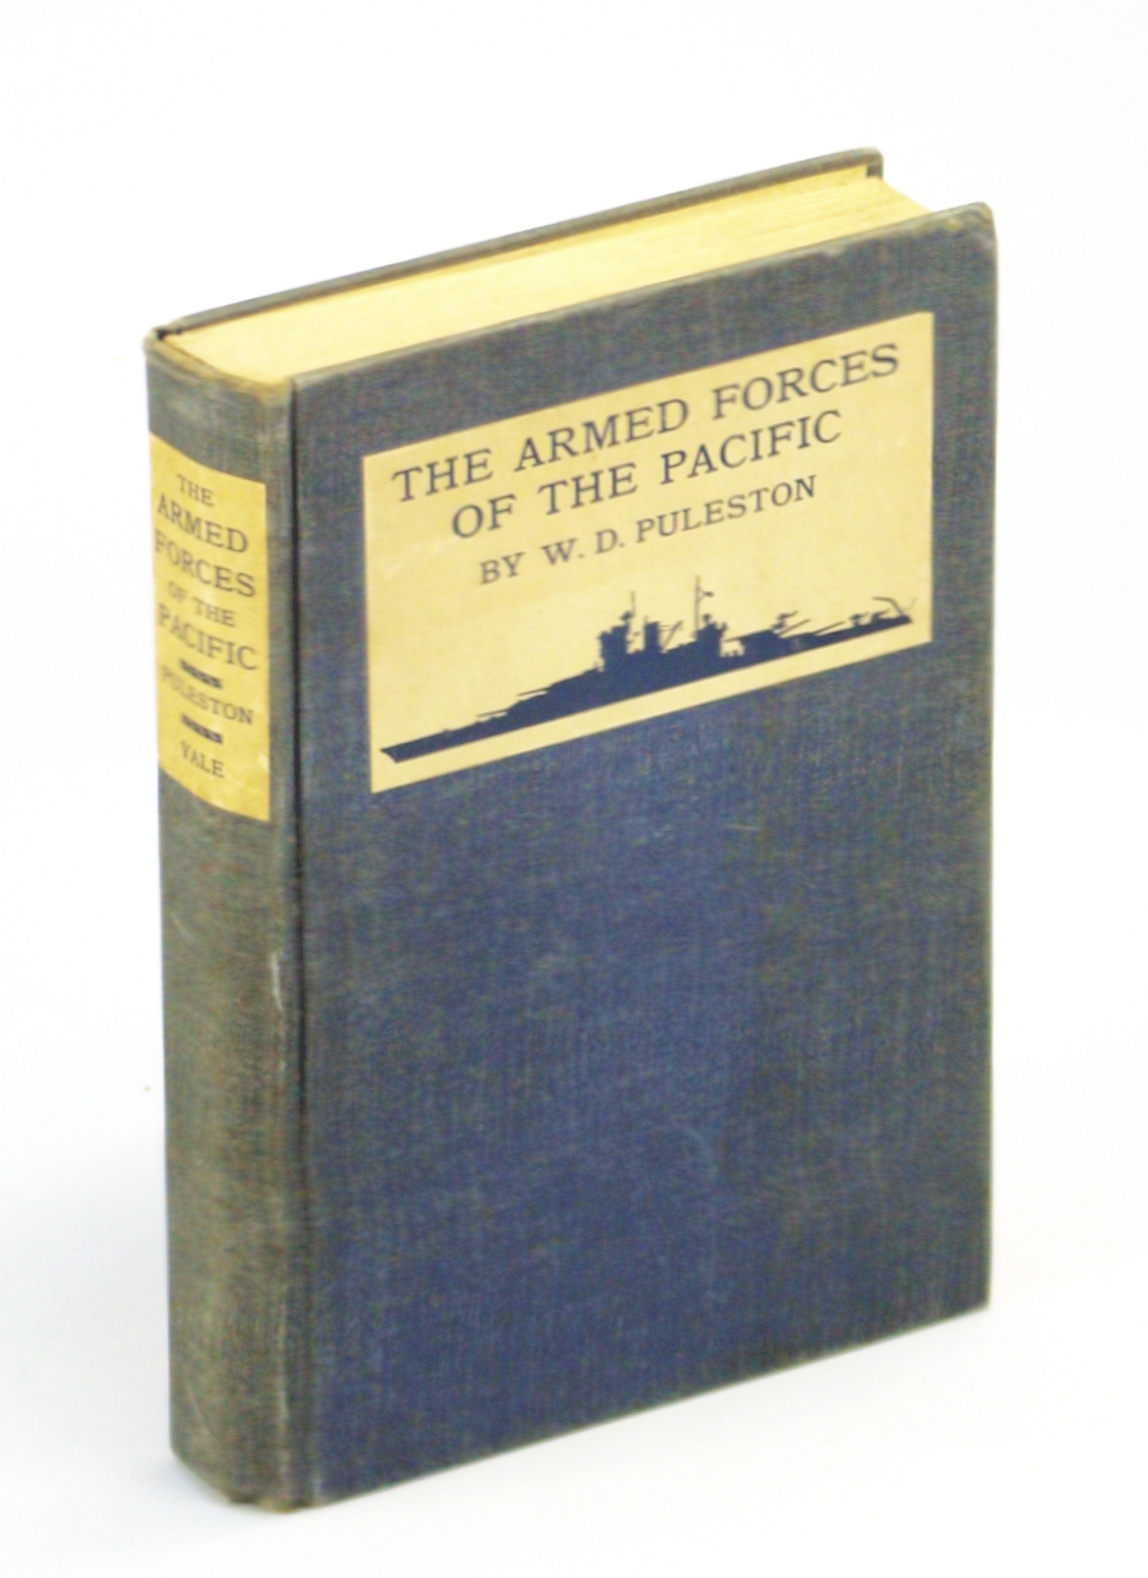 Image for THE ARMED FORCES OF THE PACIFIC:A COMPARISON OF THE MILITARY AND NAVAL POWER OF THE U.S. AND JAPAN